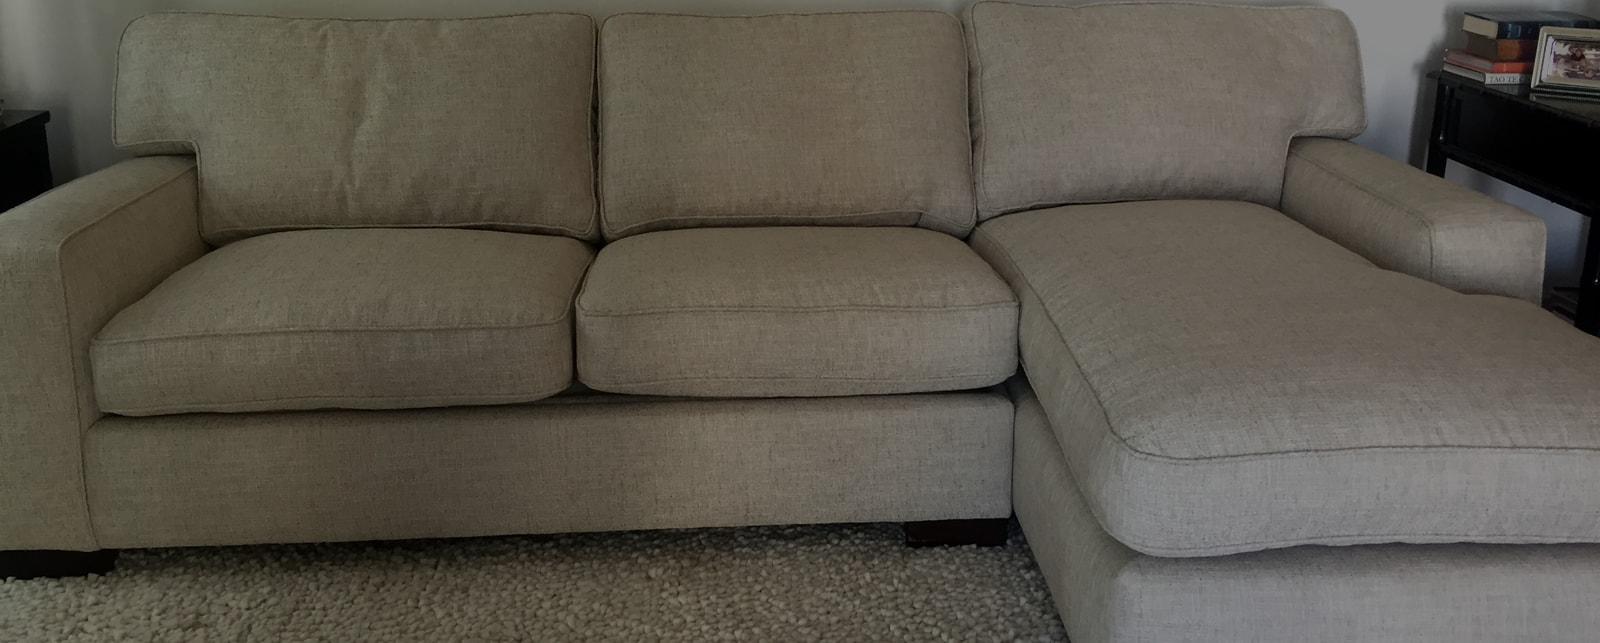 sectional sofa upholstery sherman oaks